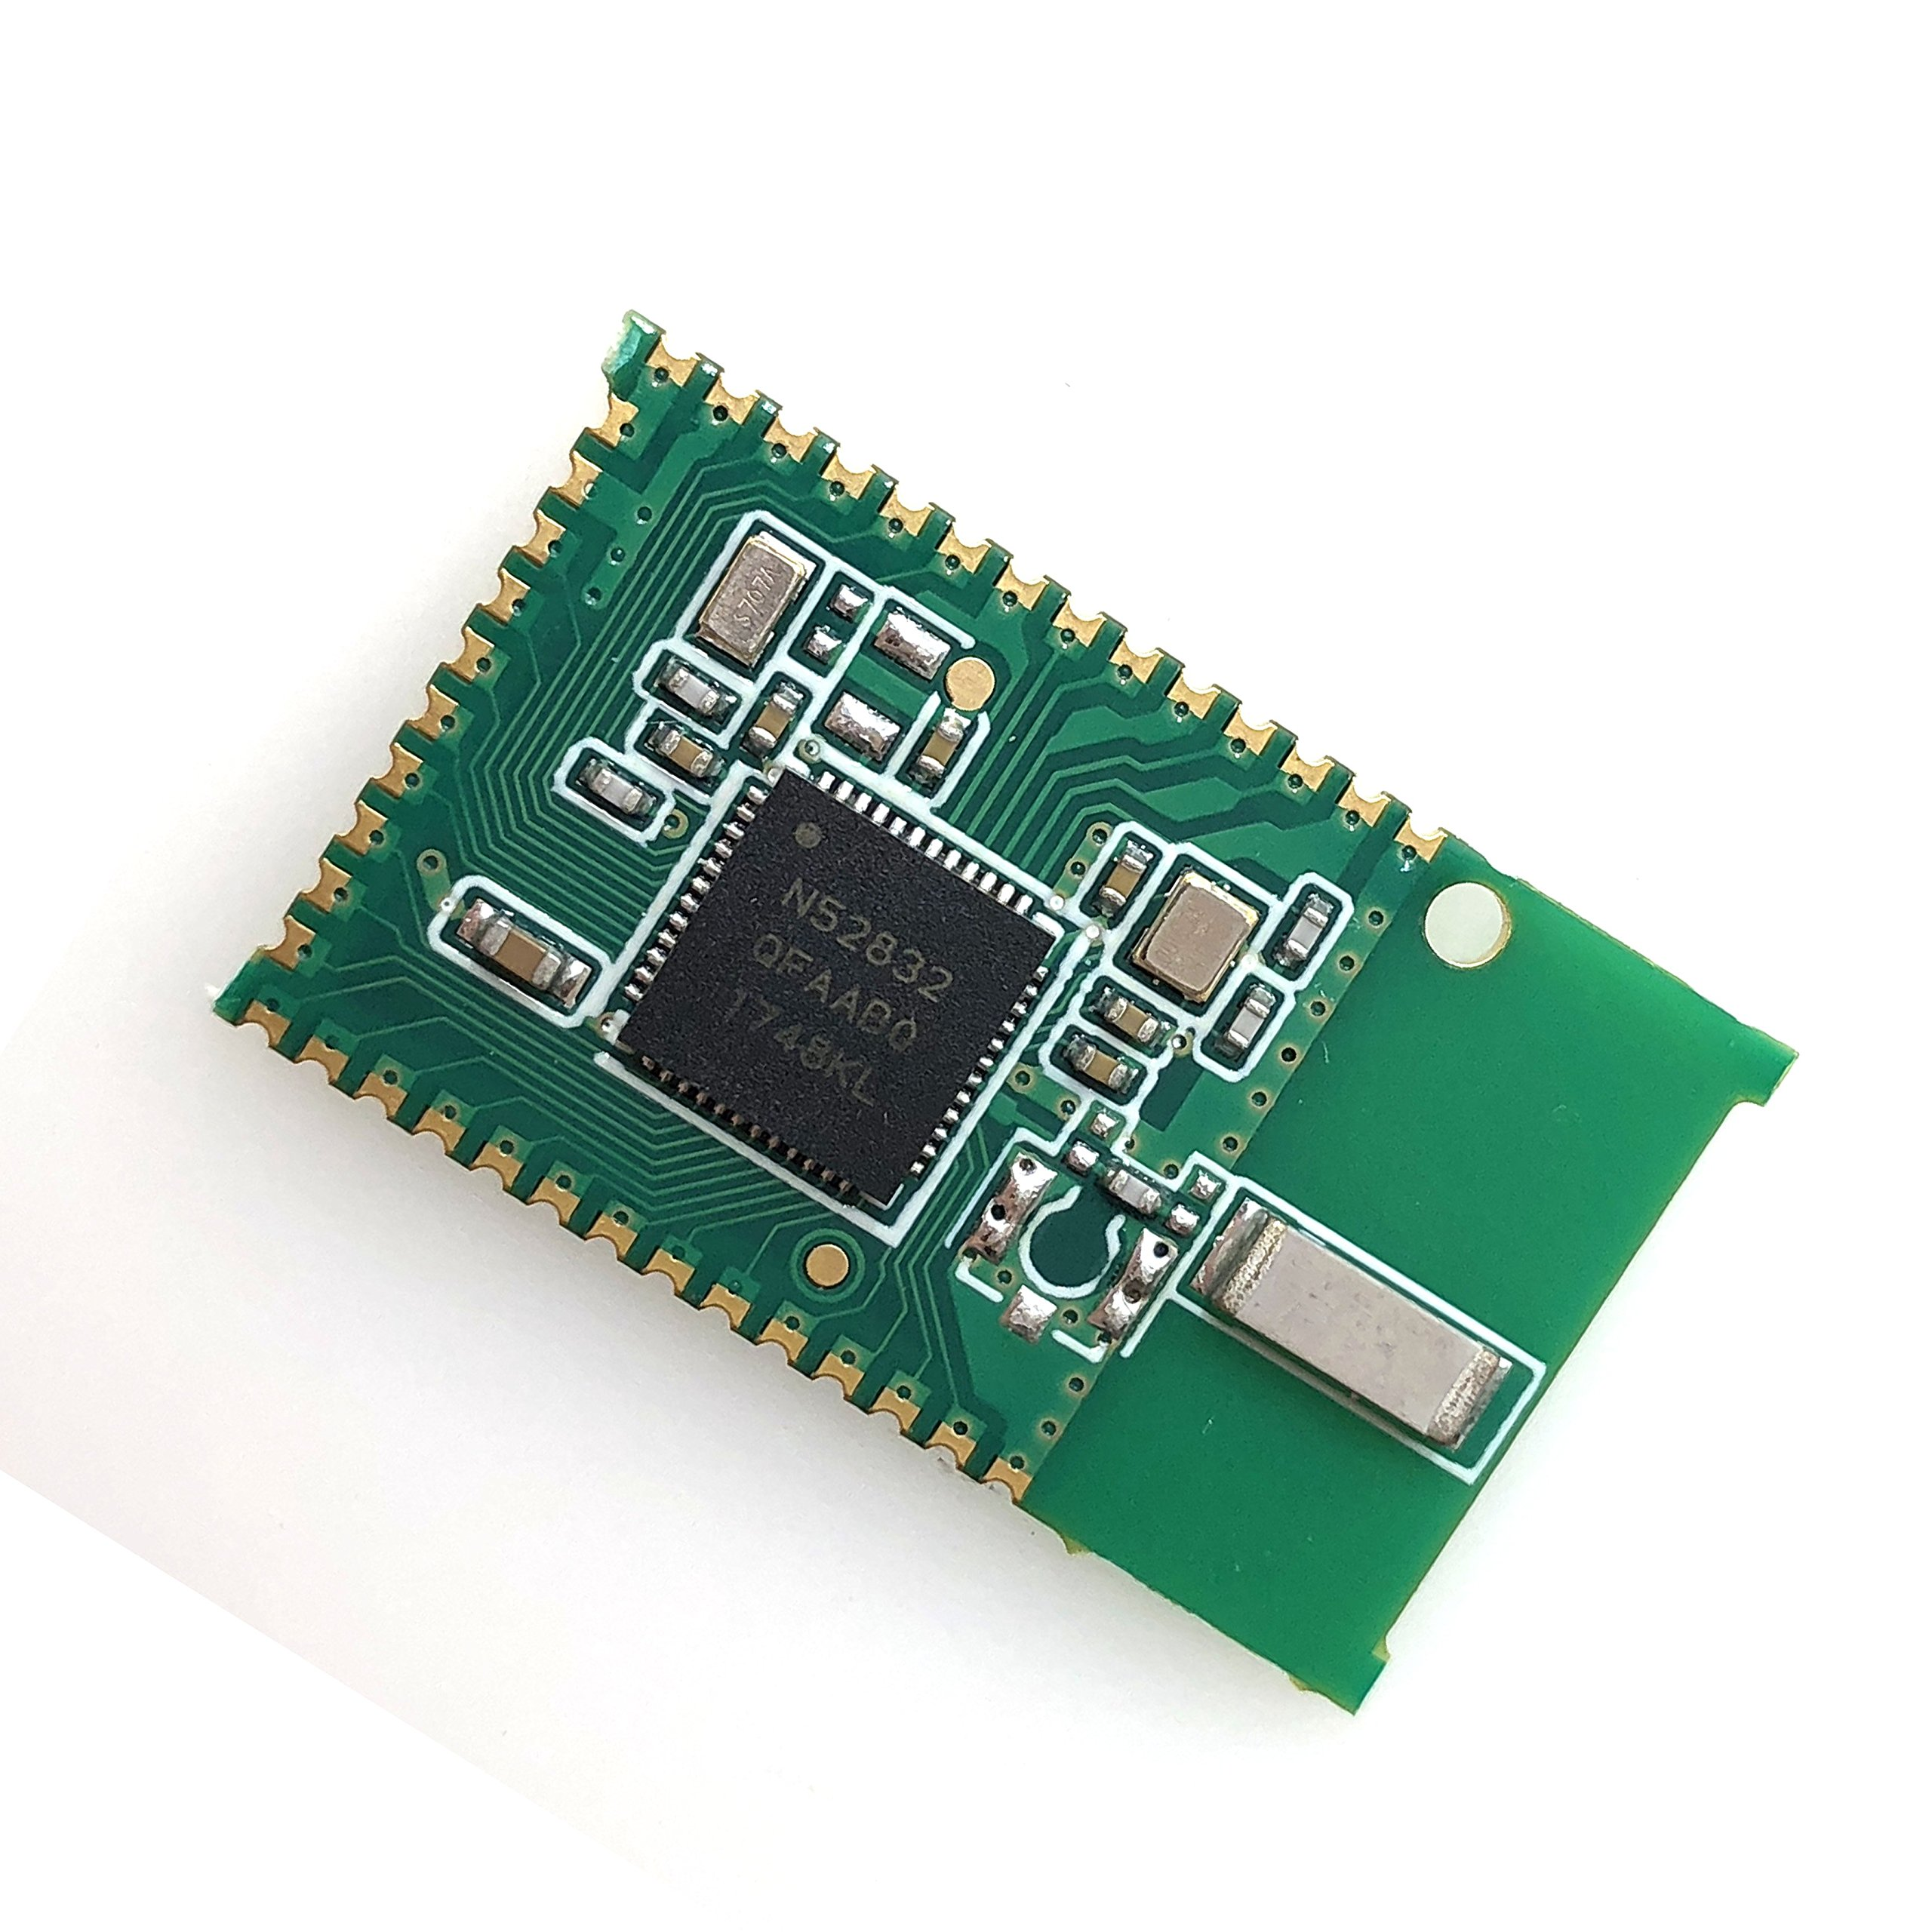 BLE5.0 Wireless Data Transmission Bluetooth Module nRF52832 with Build-in ceramics antenna for Bluetooth printer/Sports /Smart home//Medical equipment by JINOU/OEM (Image #4)